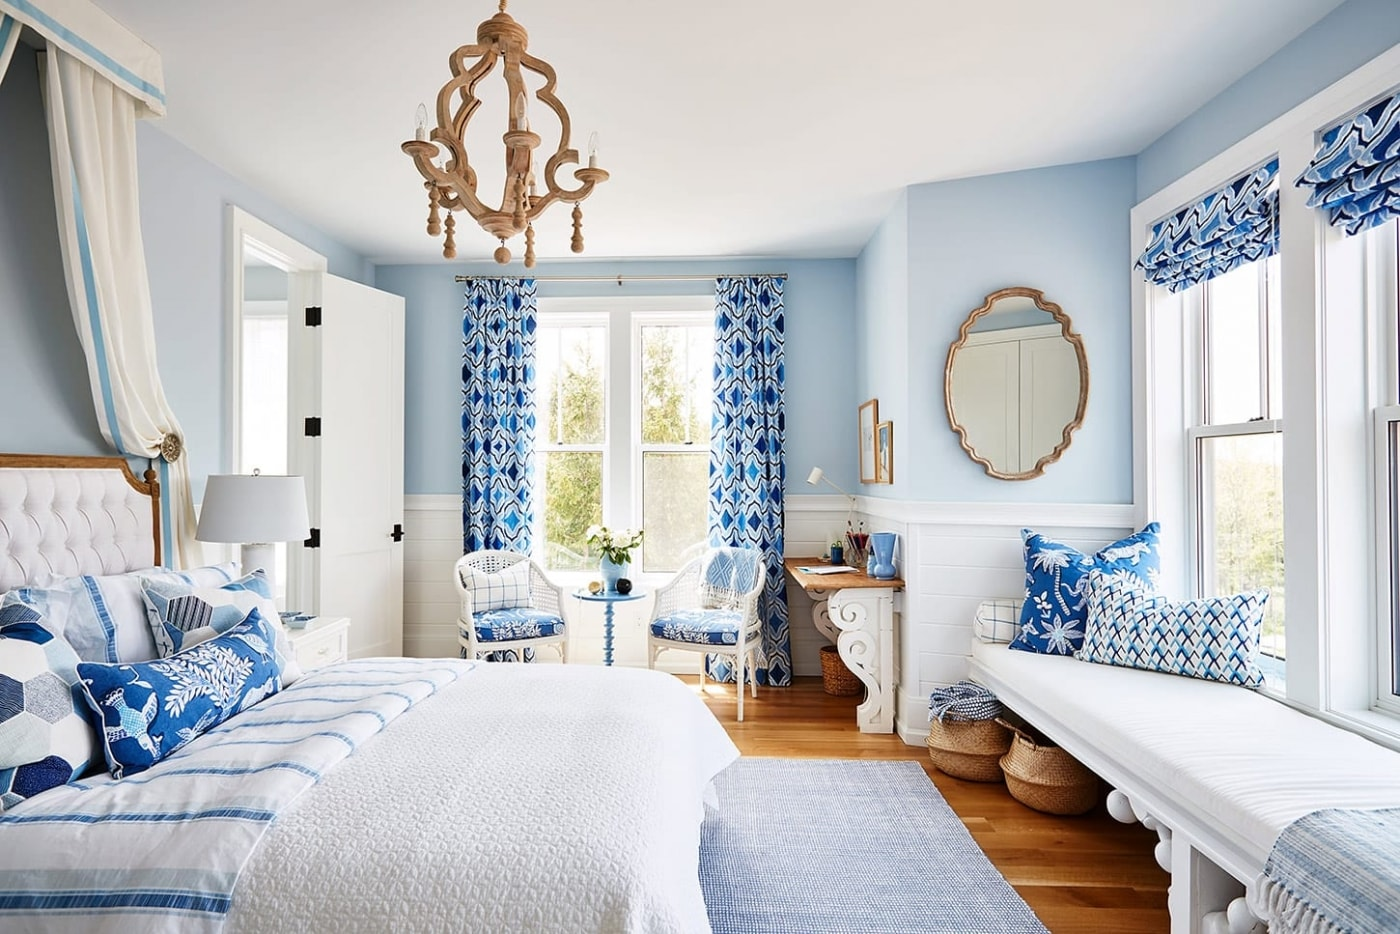 Blue and white girls room with window seat, canopy, and wood chandelier